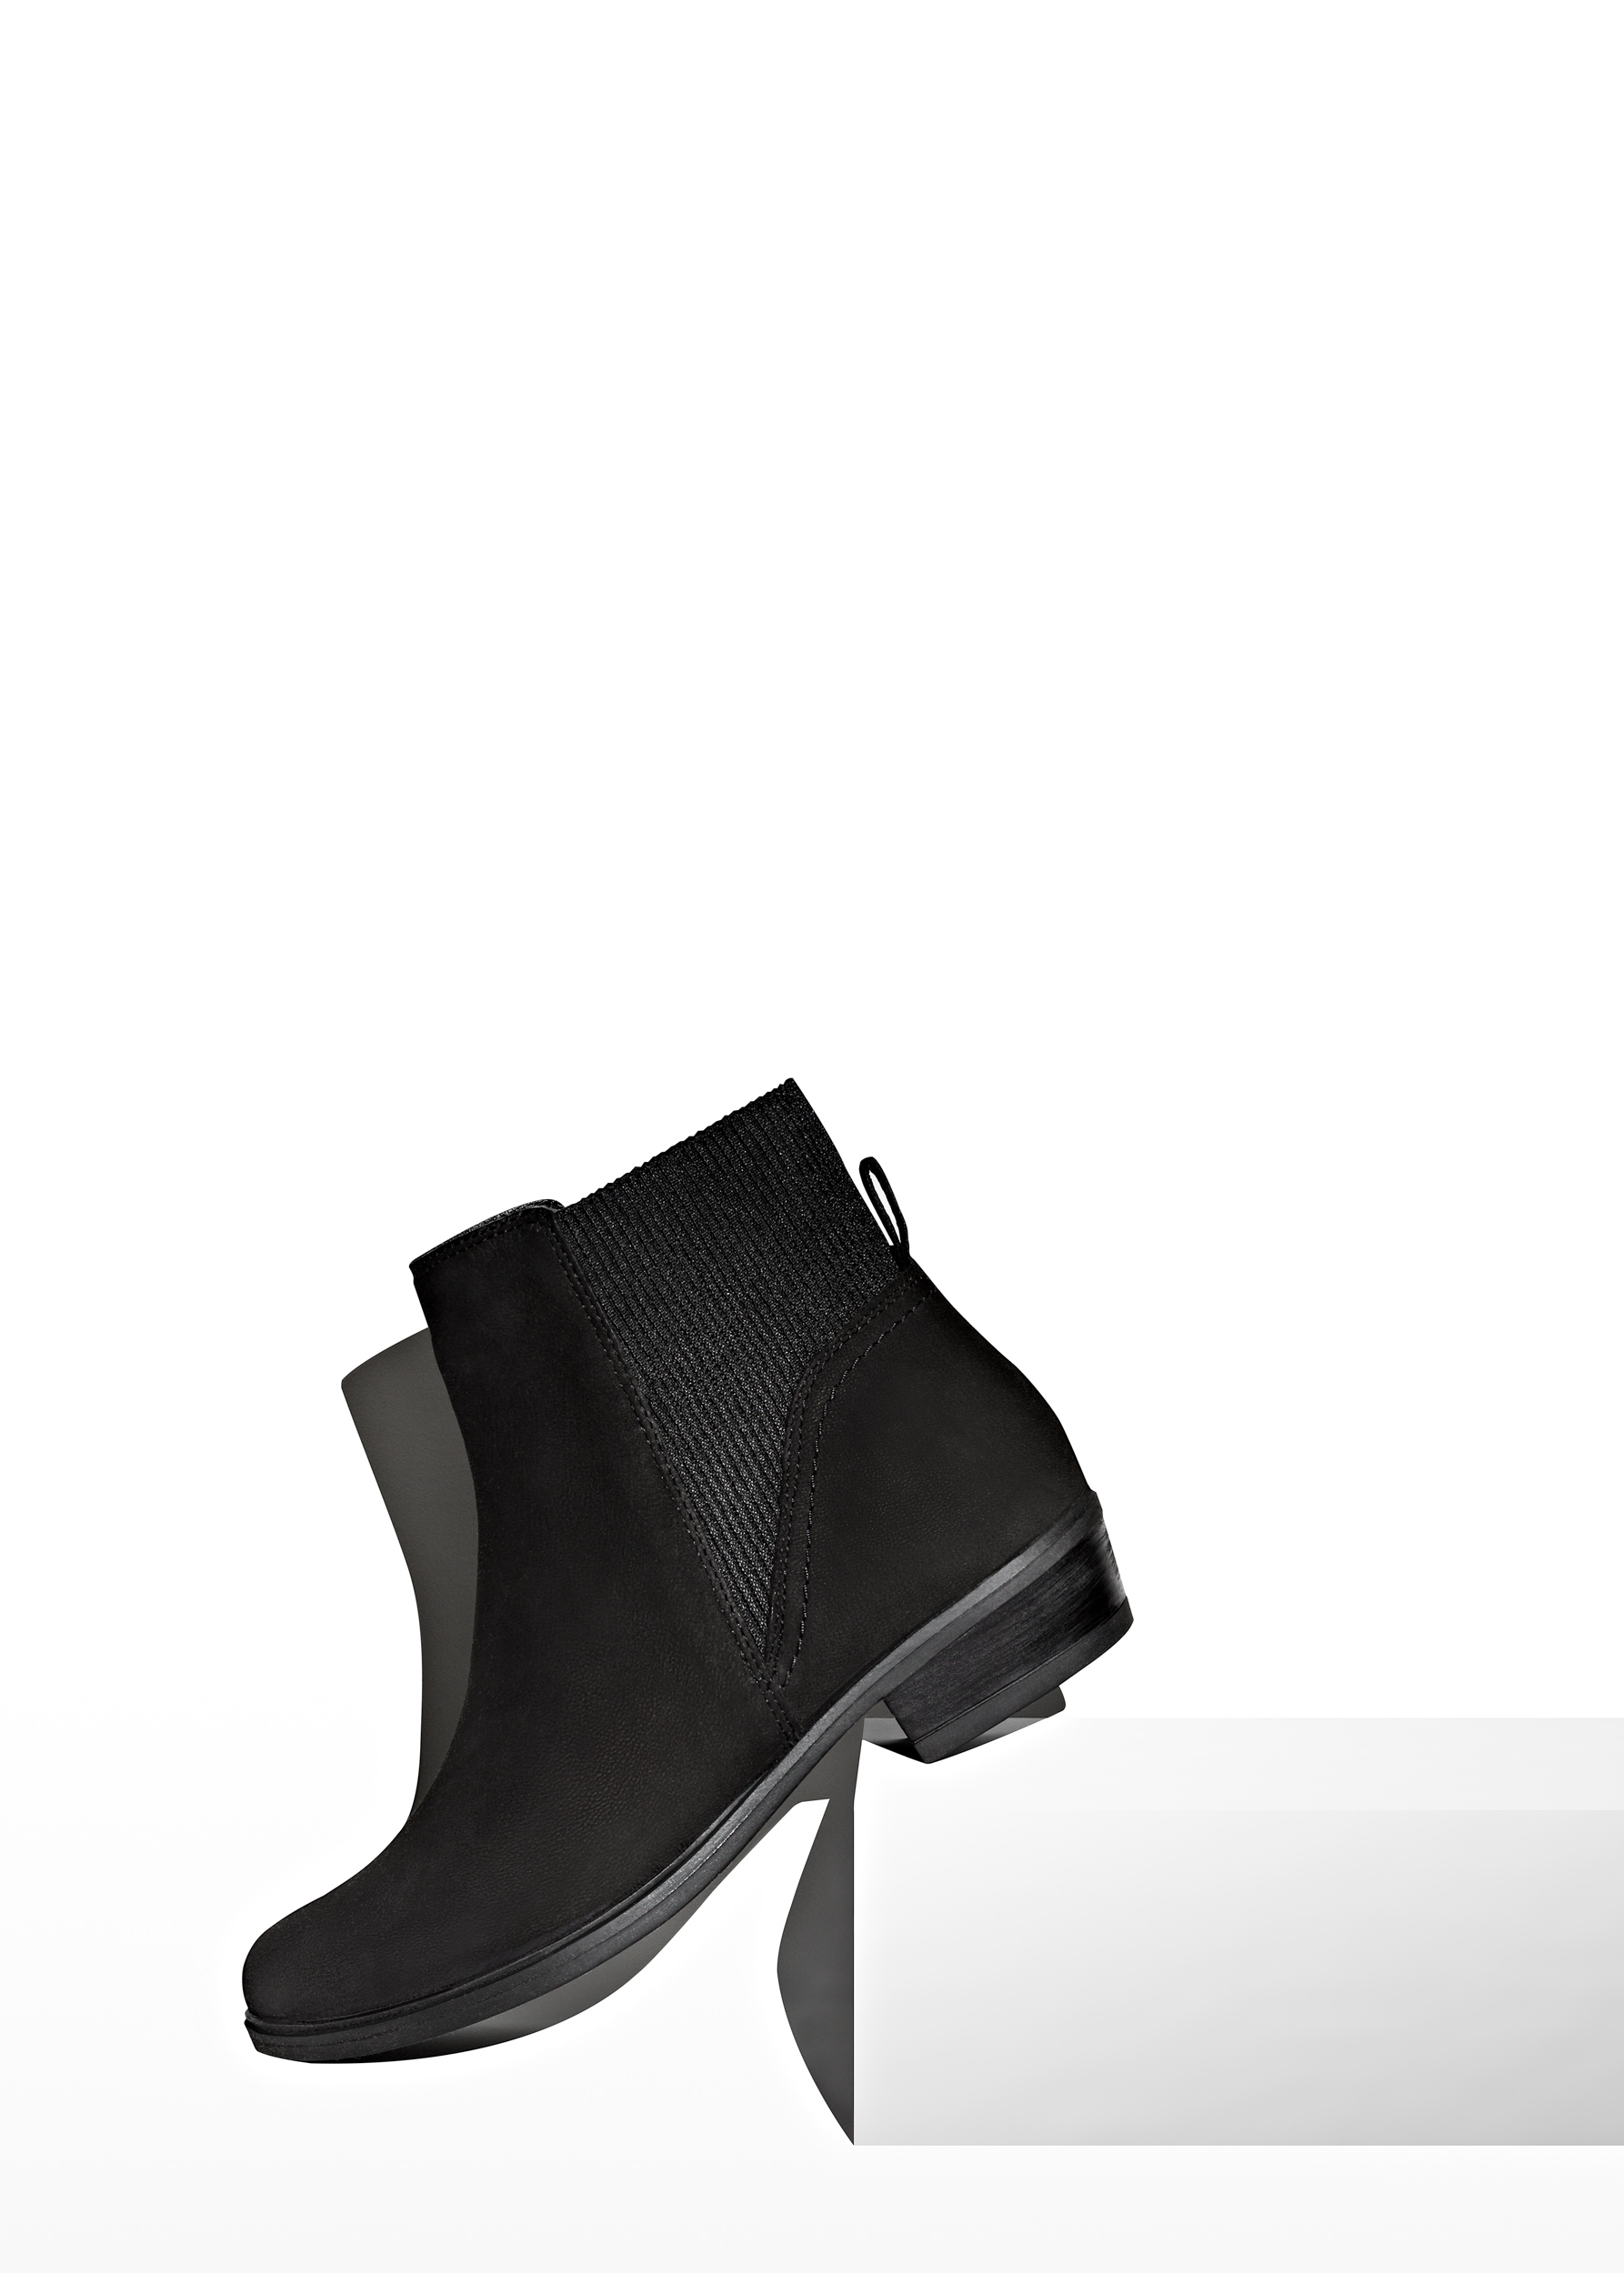 Neal Byrne Photography-Schuh Ladies Boot.jpg